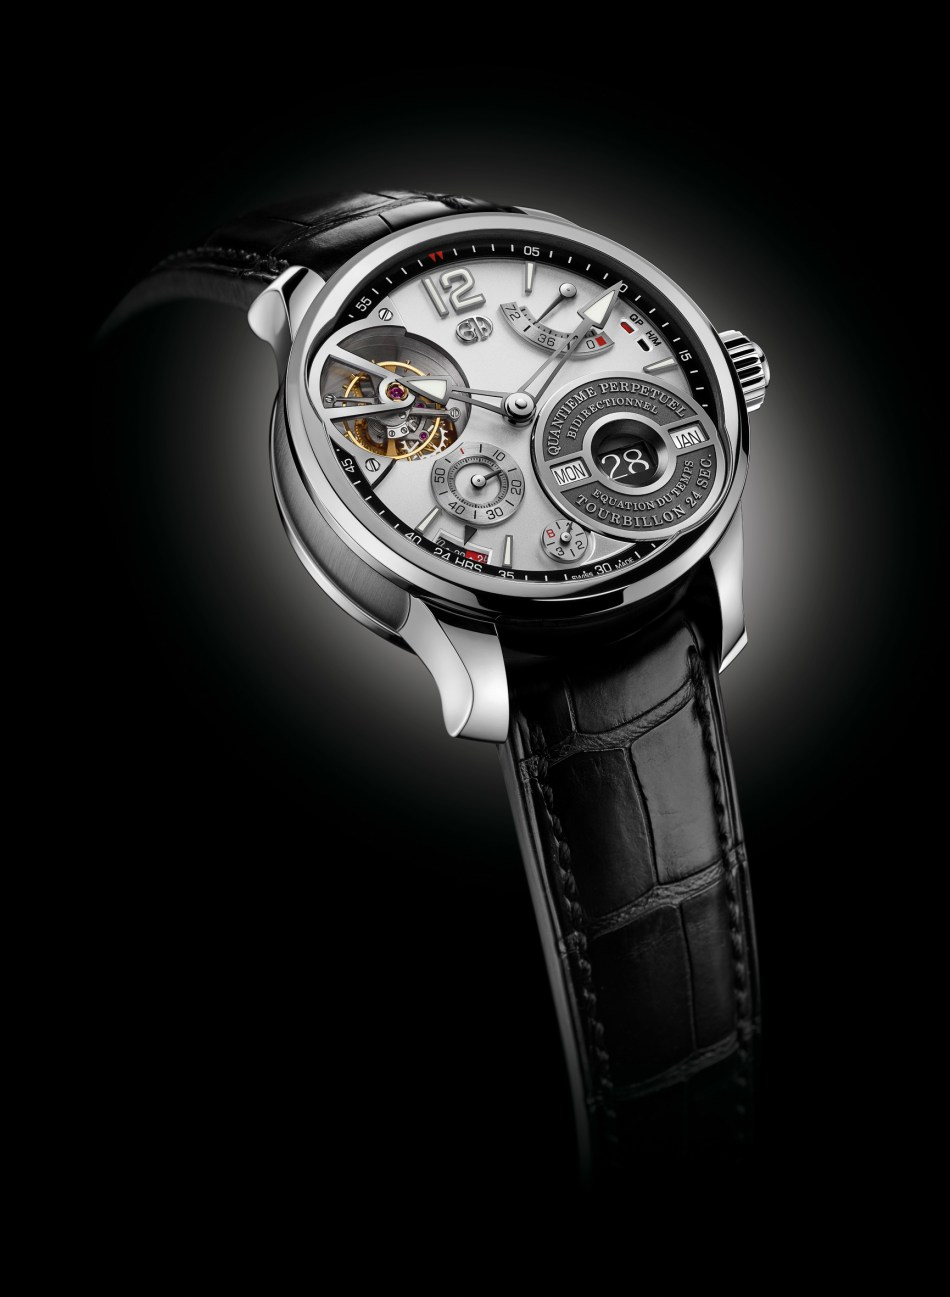 QP à Equation_Greubel Forsey_GPHG 2017_Recto